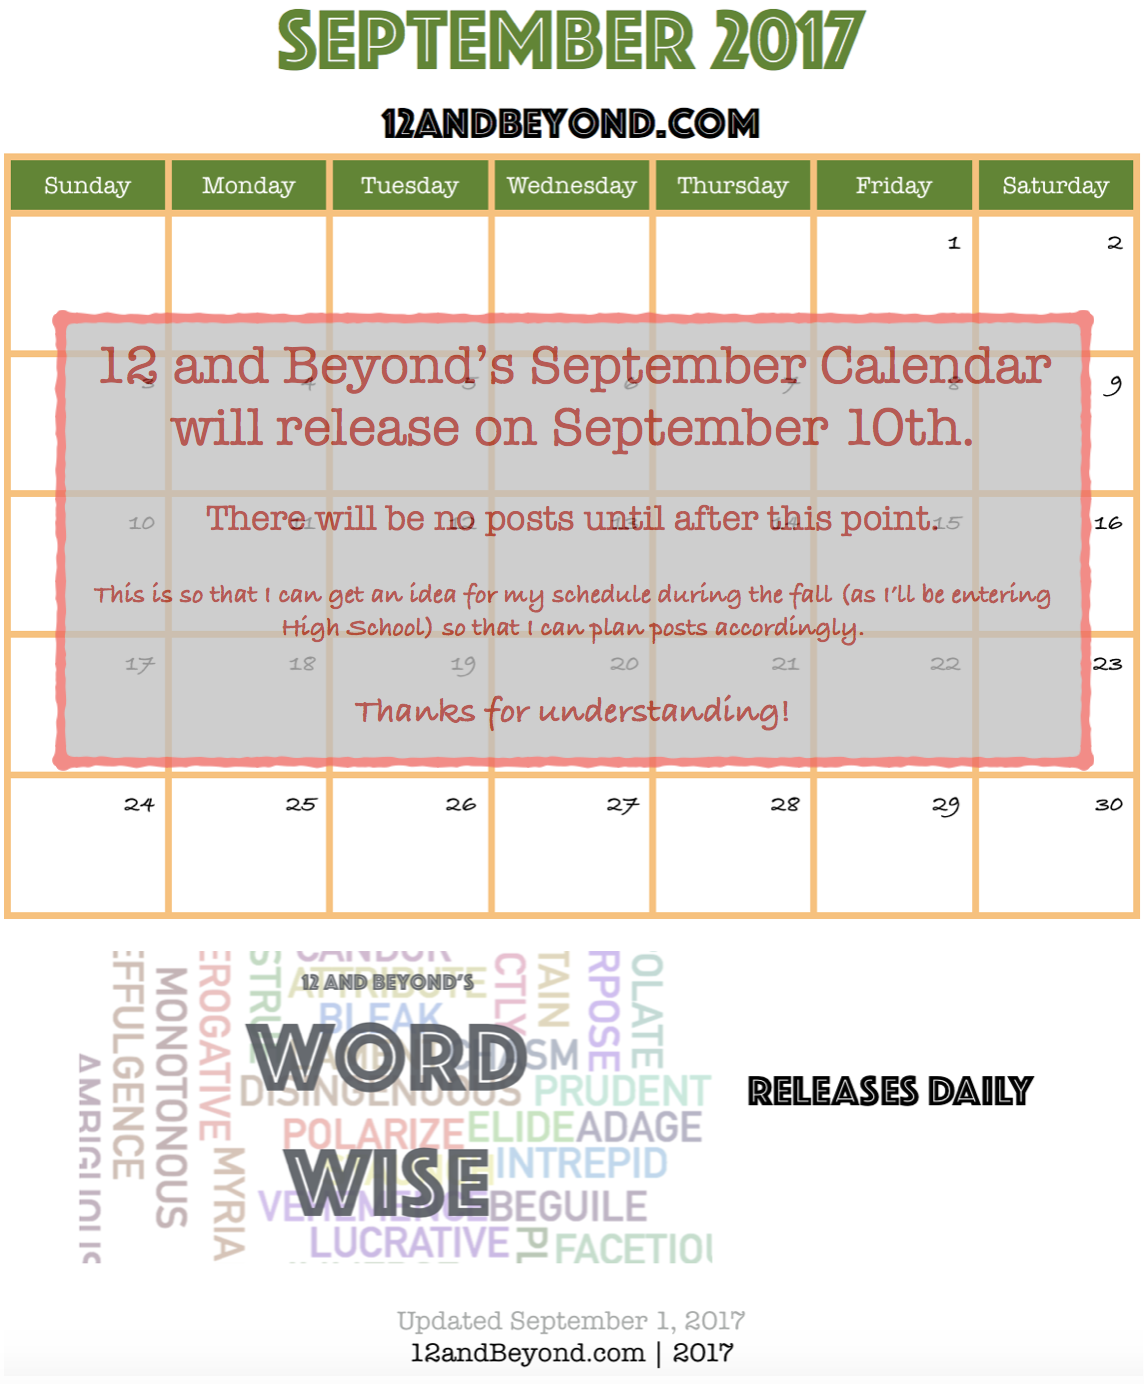 Oh no! Something went wrong, and the post calendar can't be viewed. Try refreshing the page!